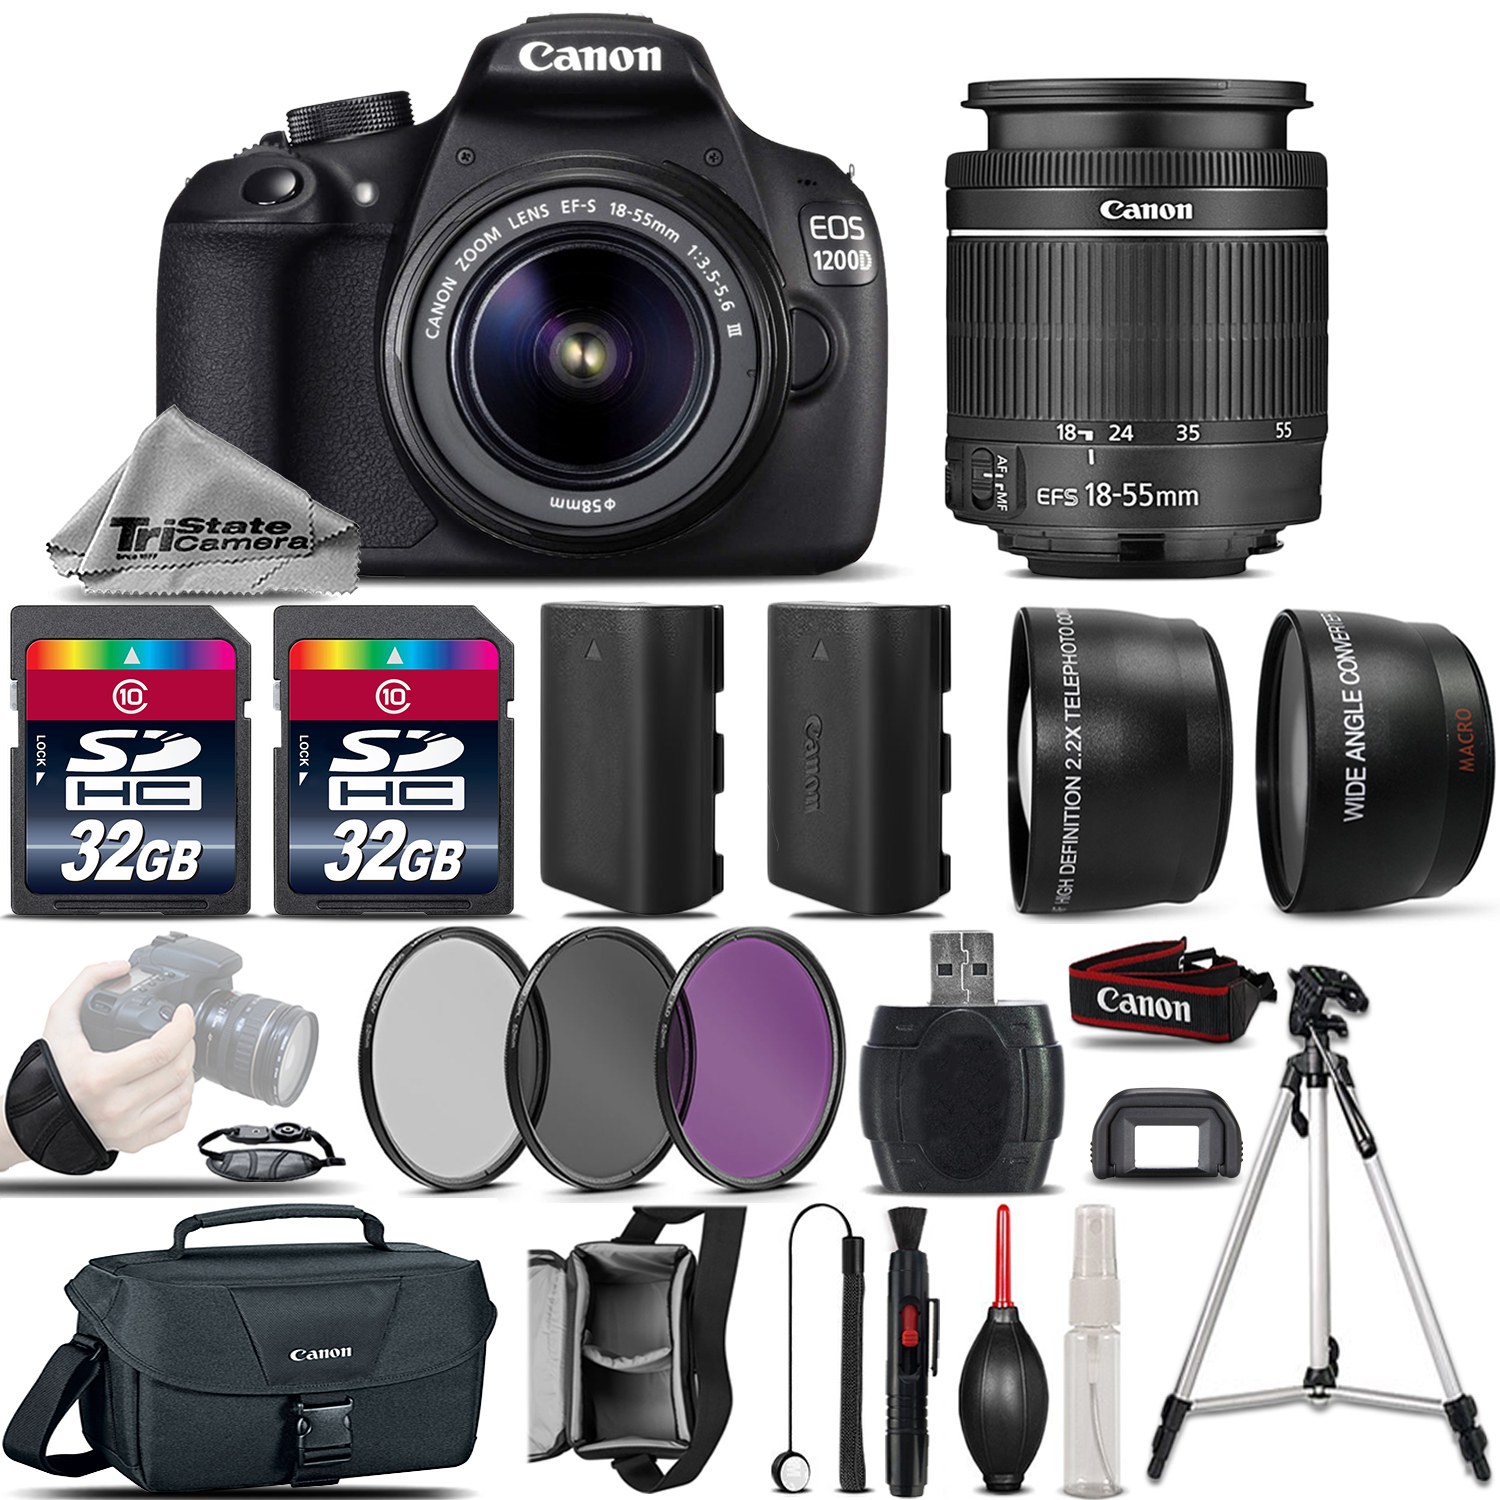 EOS Rebel 1200D /T5 Camera + 18-55mm DC III Lens + 64GB + EXT BATT & More *FREE SHIPPING*